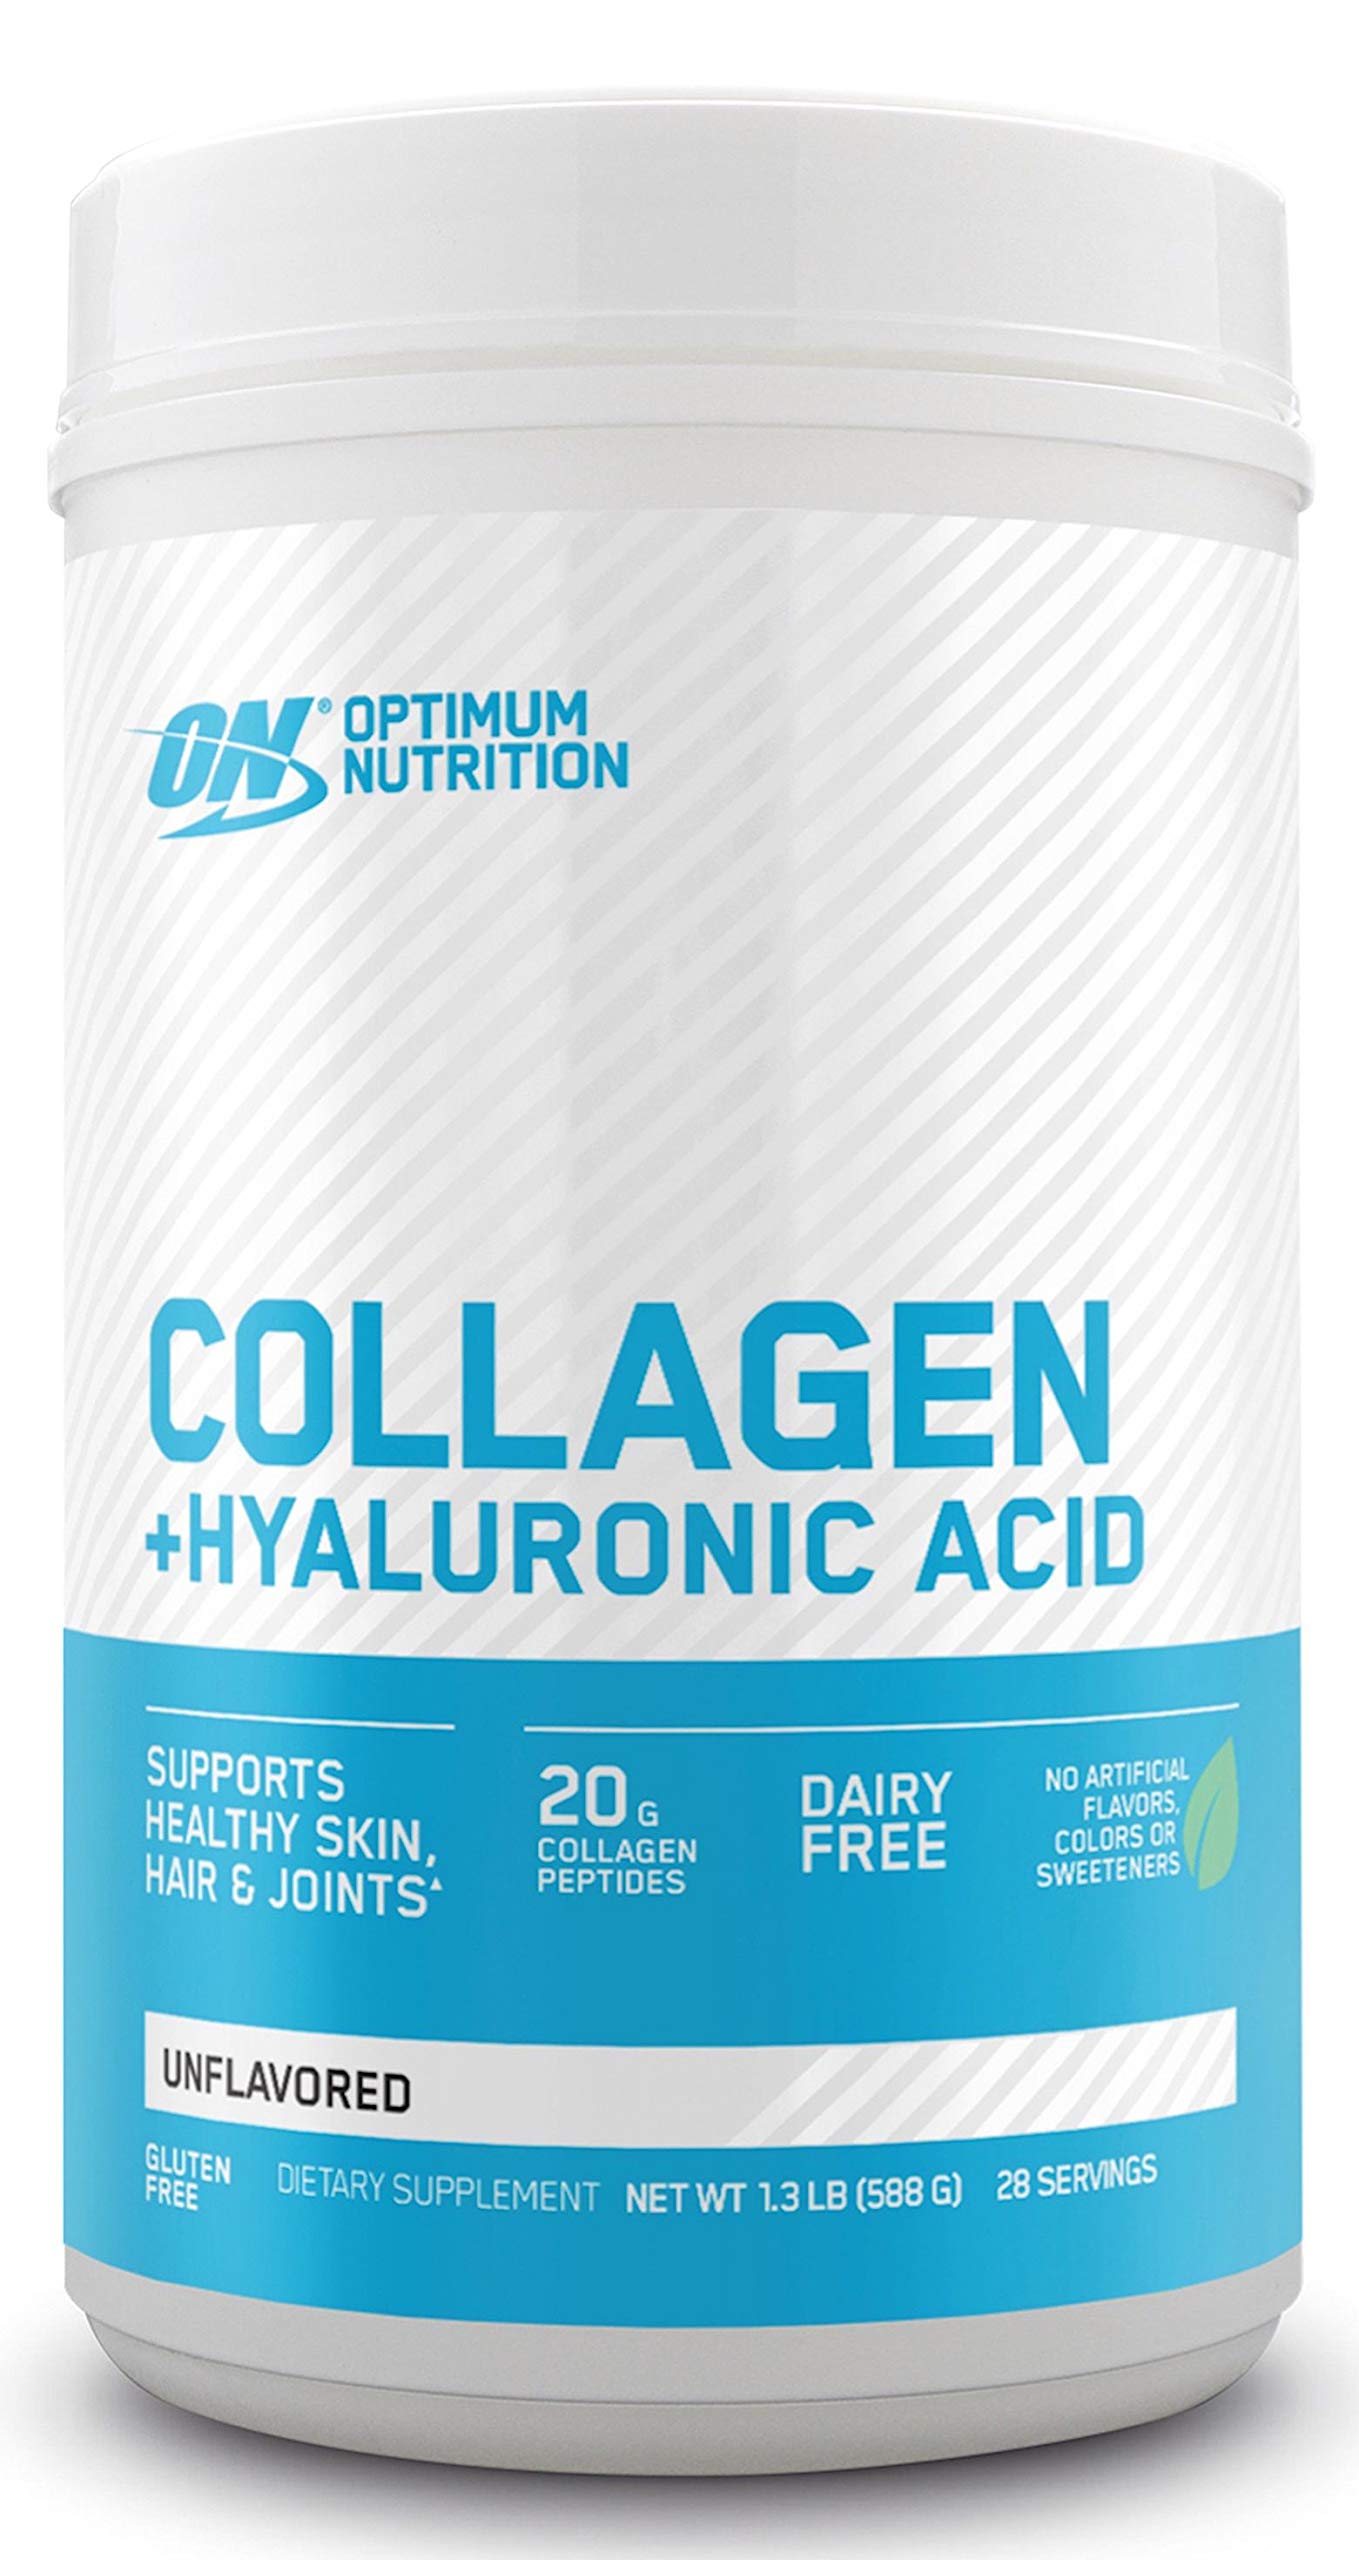 Collagen Peptides Powder By Optimum Nutrition, Vitamin C & D for Immune Support, 20g Hydrolyzed Collagen with Hyaluronic Acid, Unflavored, 28 Servings, Supports Healthy Skin, Hair & Joints